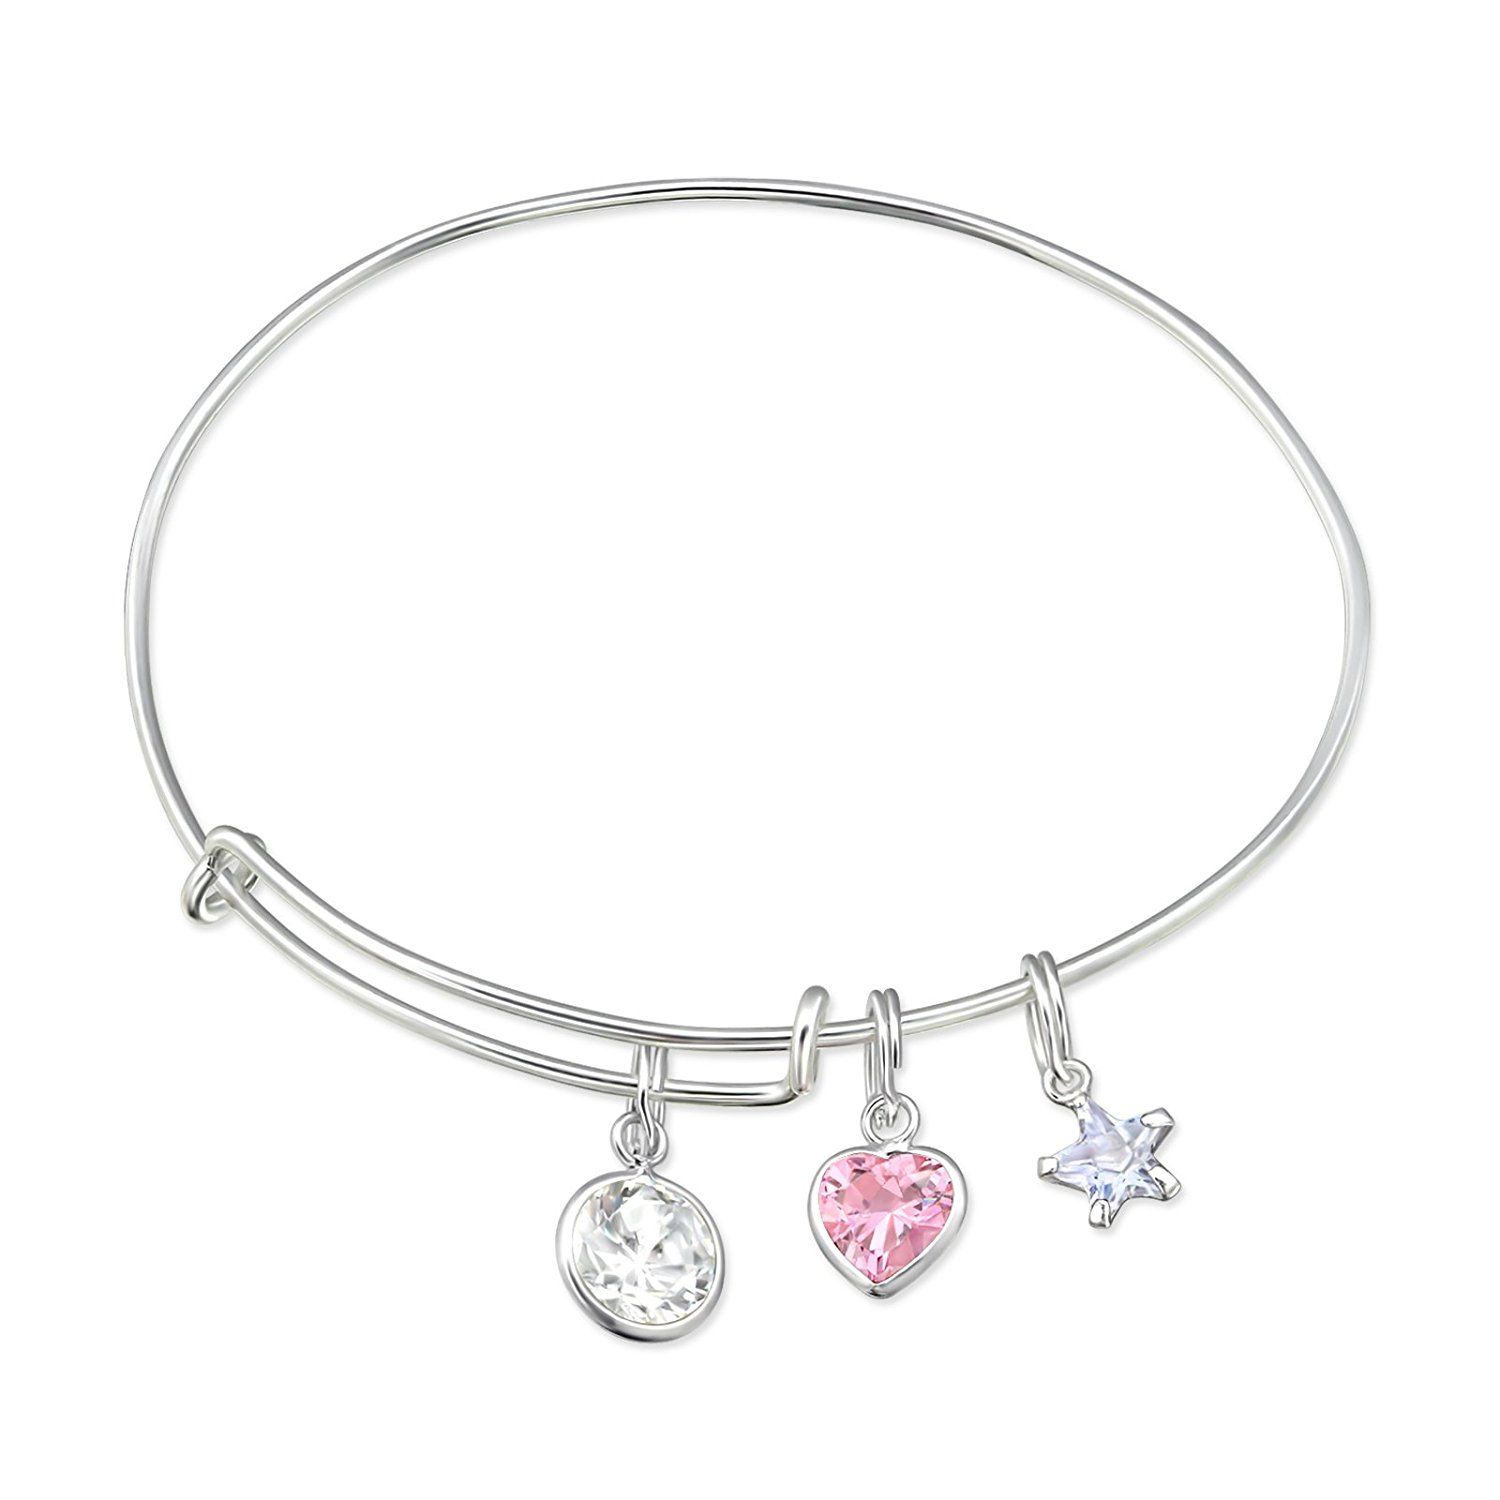 lily nily bangles mosaic products childrens bangle